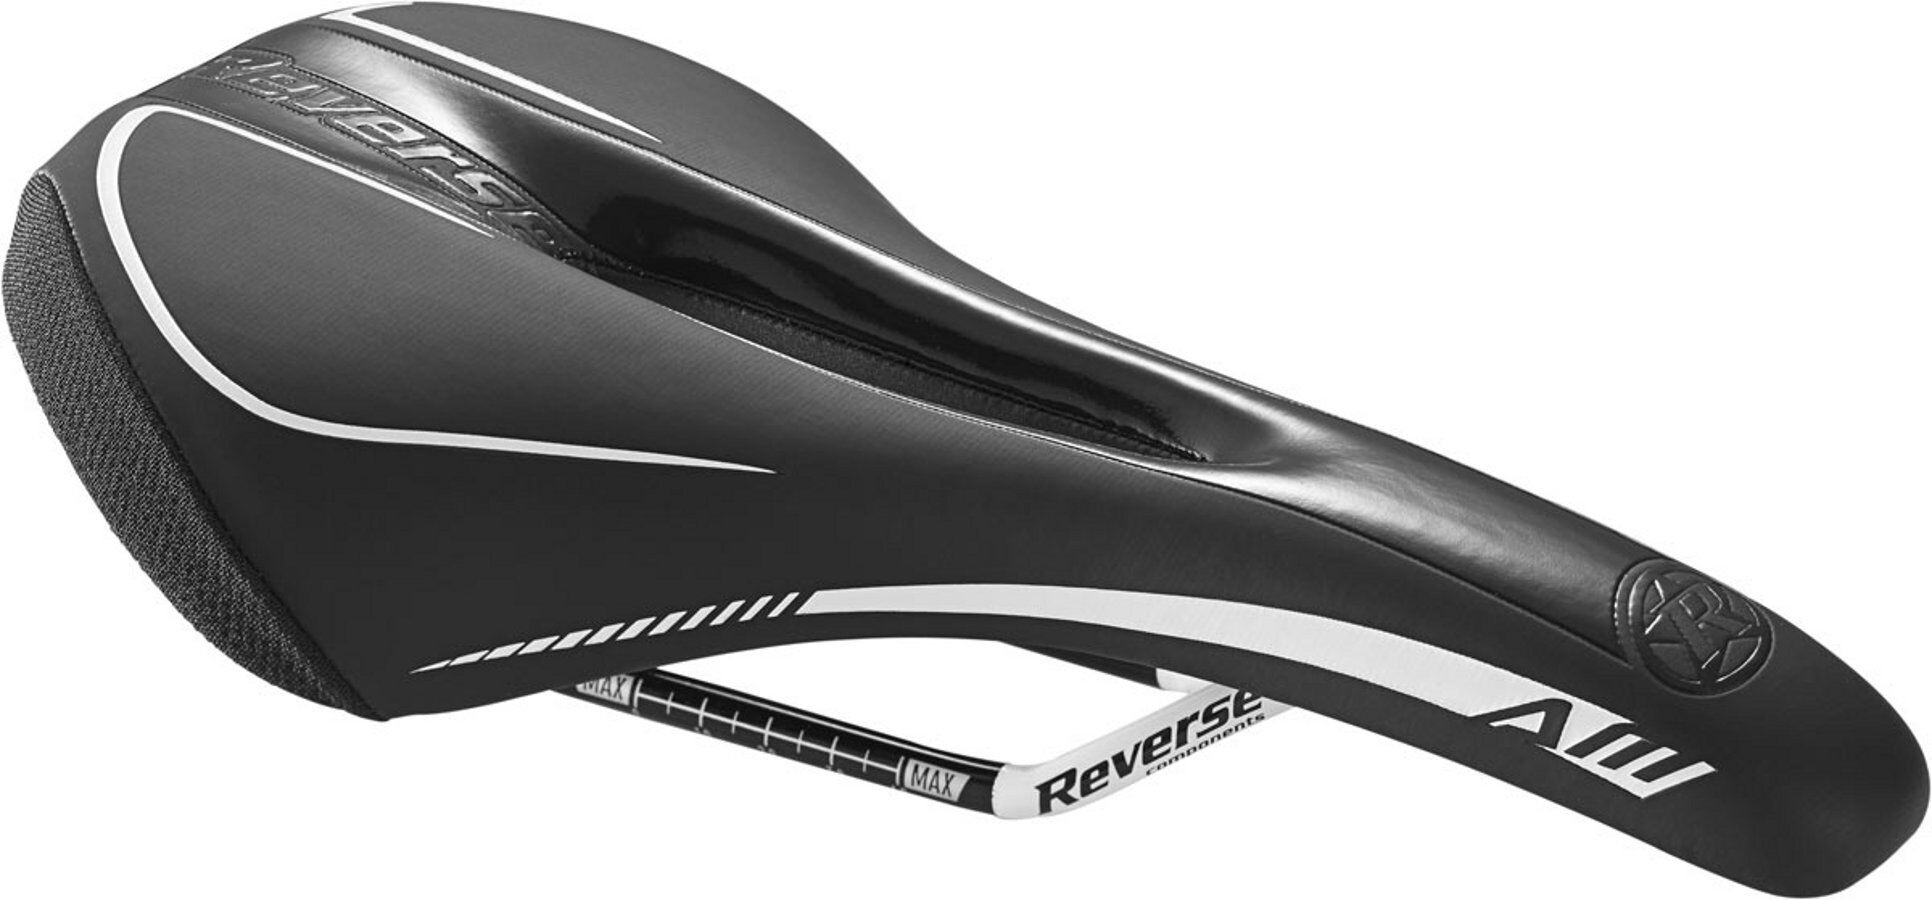 Reverse AM Ergo Sadel, black/yellow (2020) | Saddles